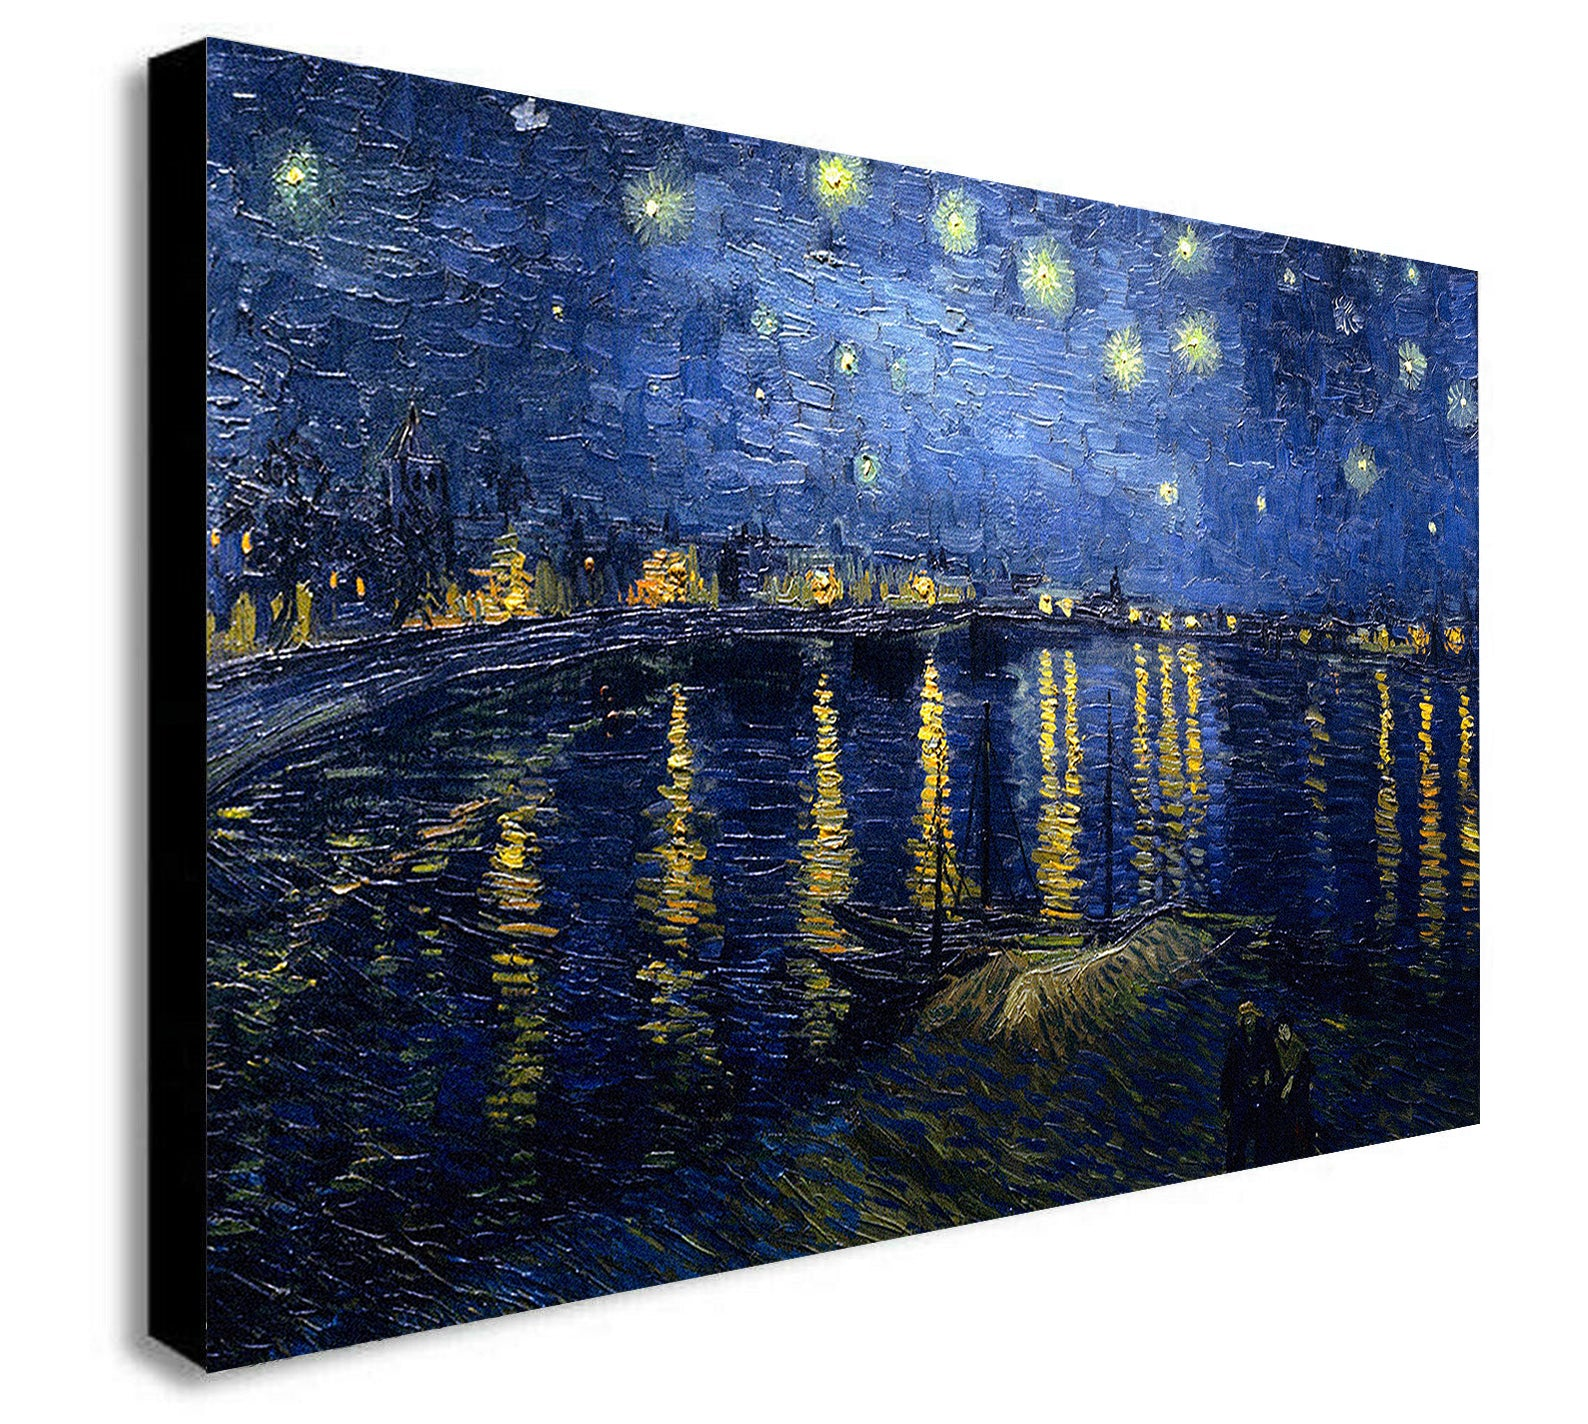 Van Gogh - Starry Night Over the Rhone Canvas Wall Art Framed Print -Various Sizes